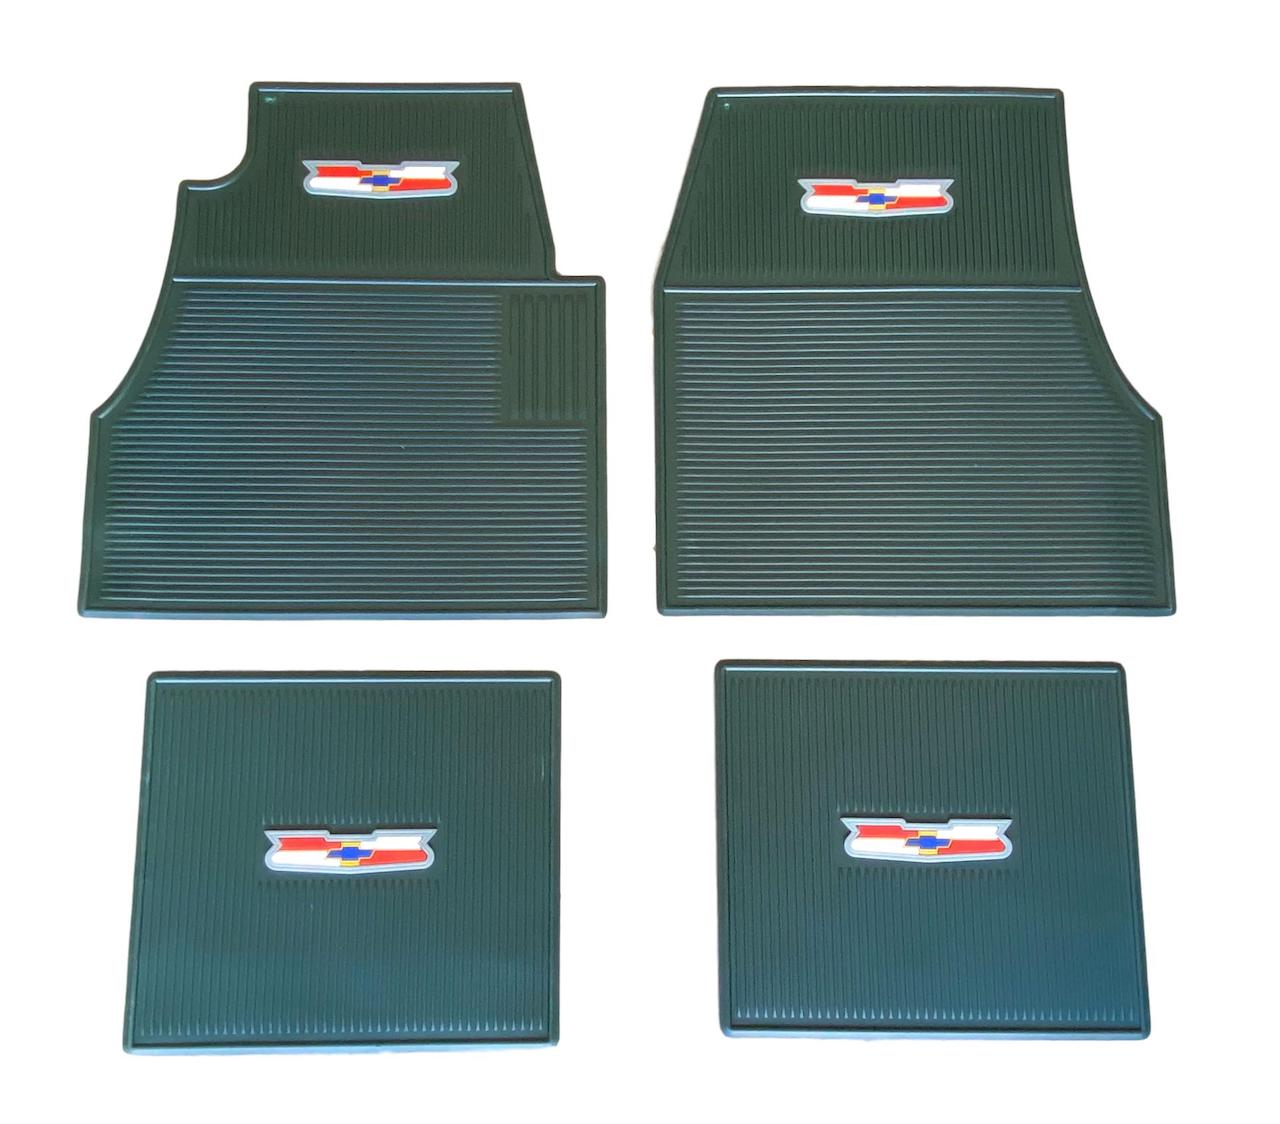 1955 1956 1957 Chevy Green Rubber Floor Mats With Crest Logo